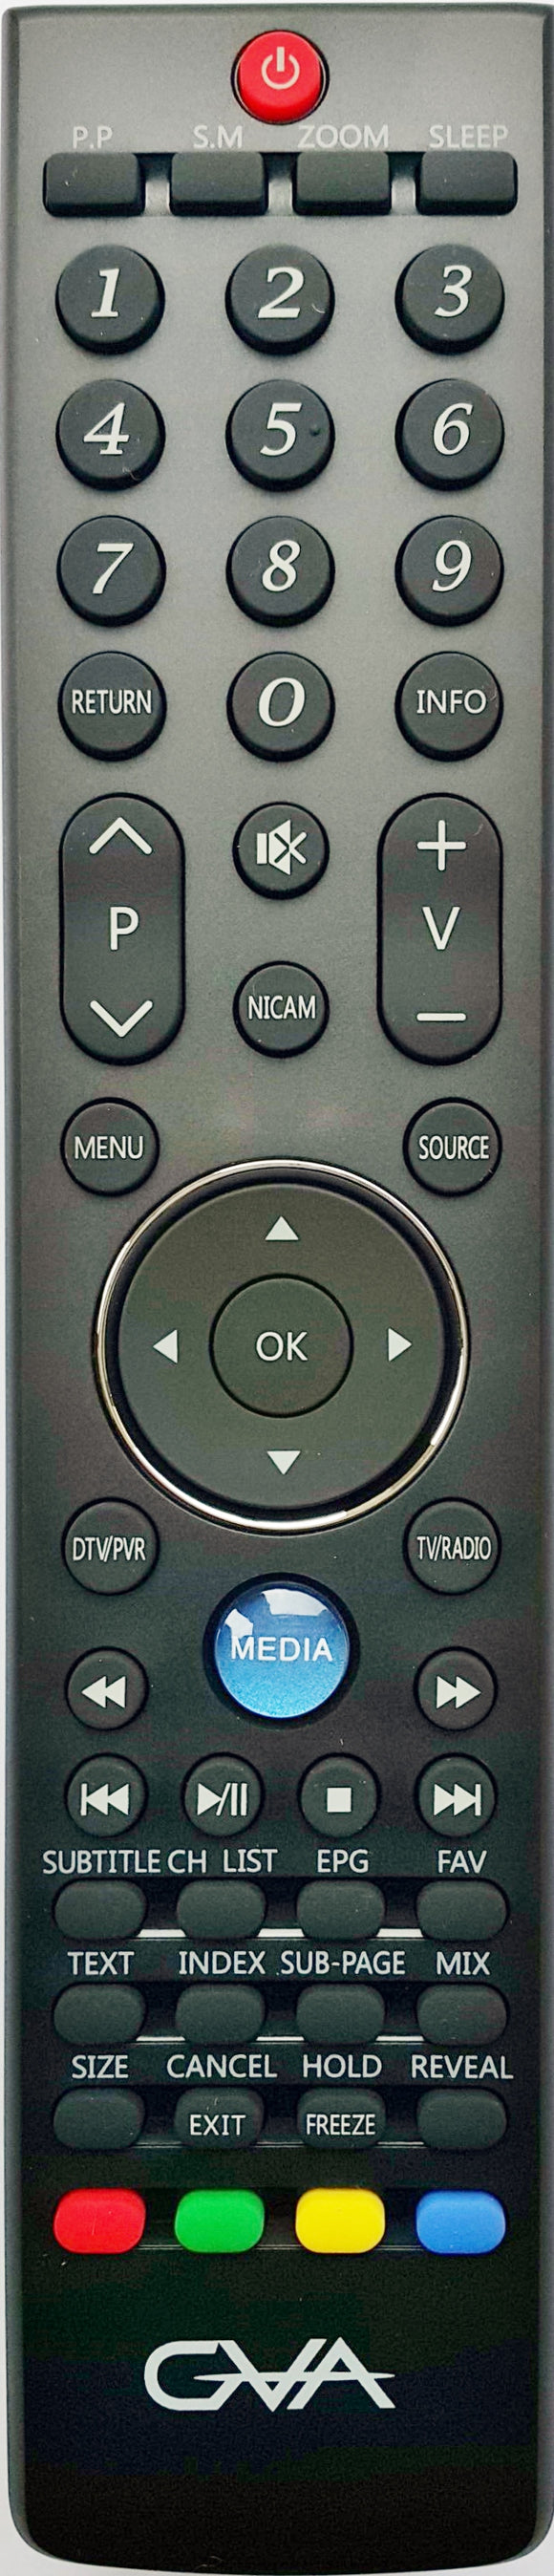 ORIGINAL GVA REMOTE CONTROL - GVA32E61   LED FHD TV